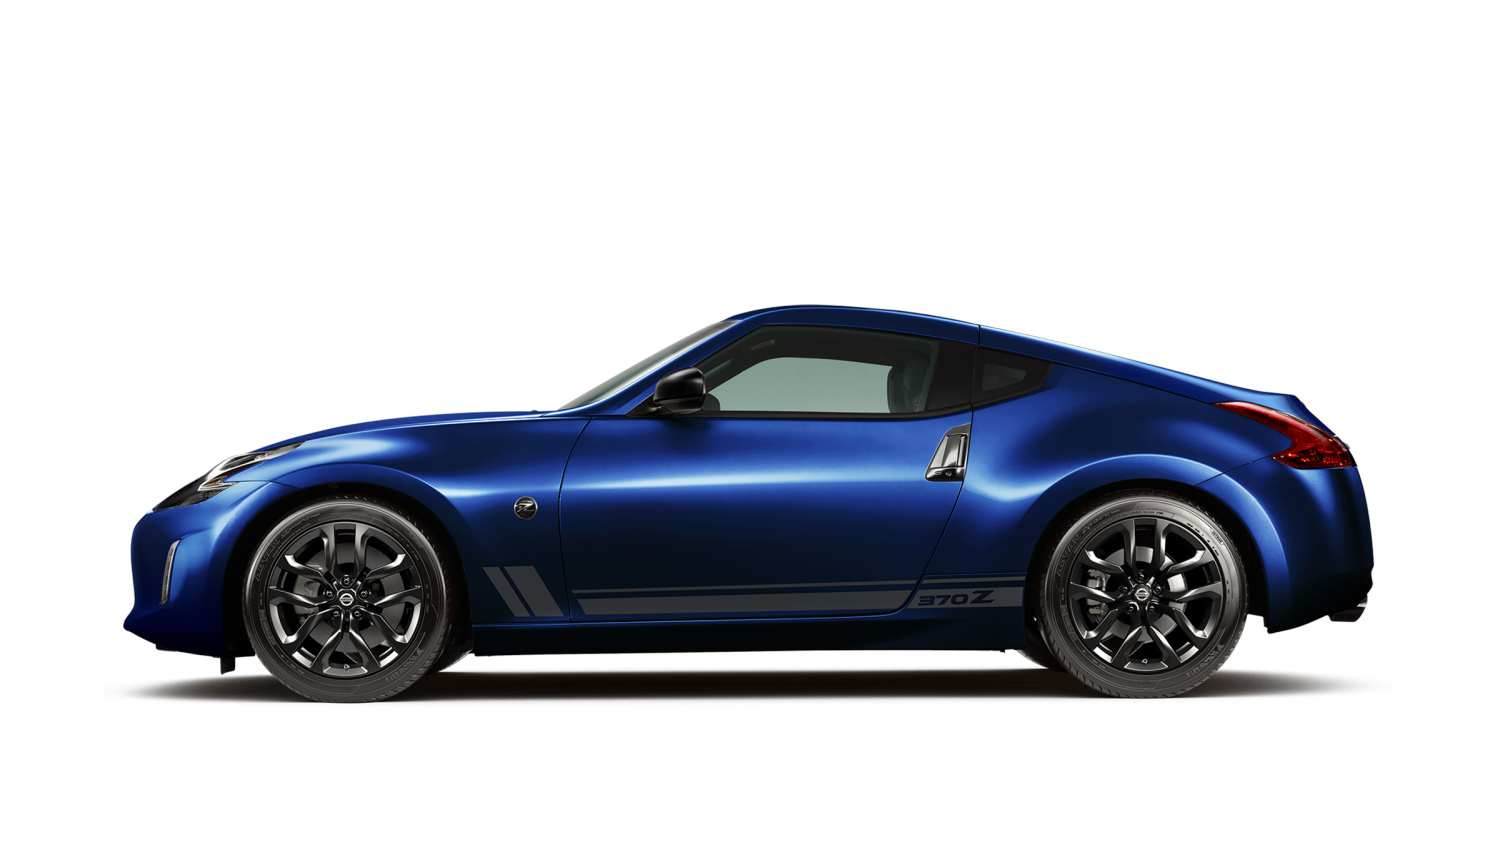 46 All New 2019 Nissan Z370 Configurations for 2019 Nissan Z370